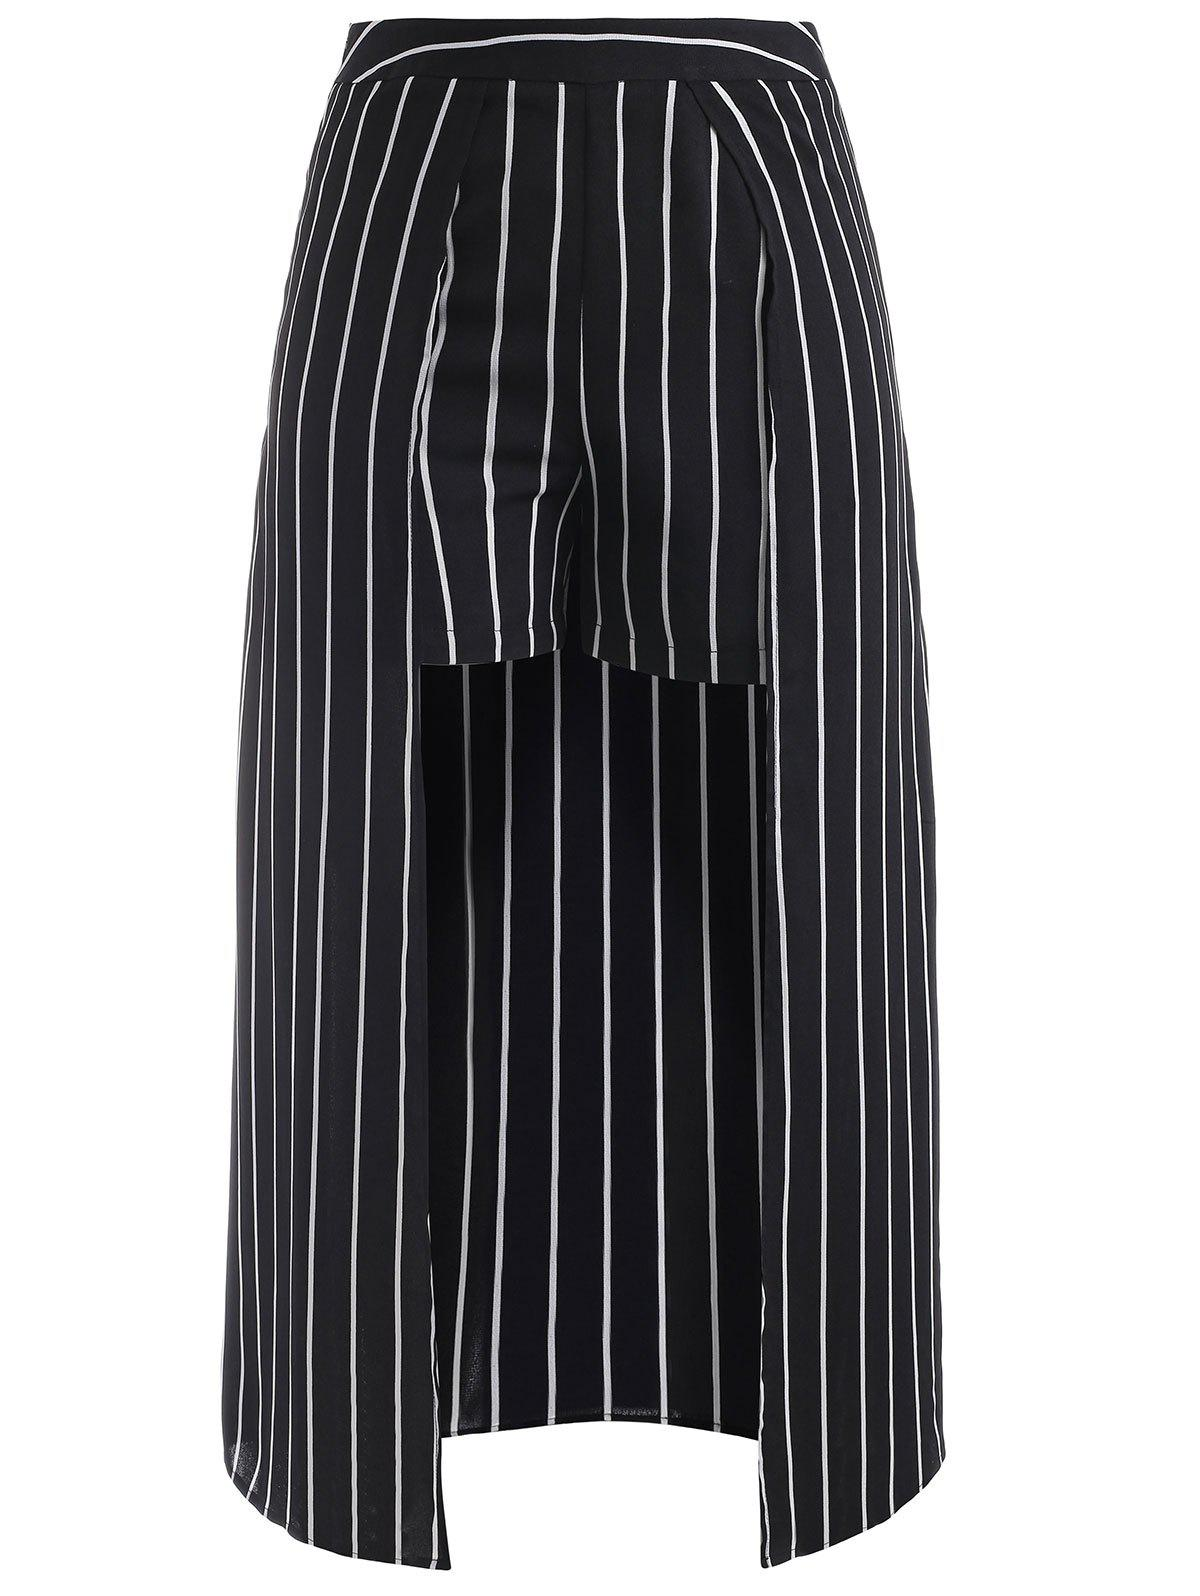 Discount Striped Shorts with Maxi Skirt Overlay